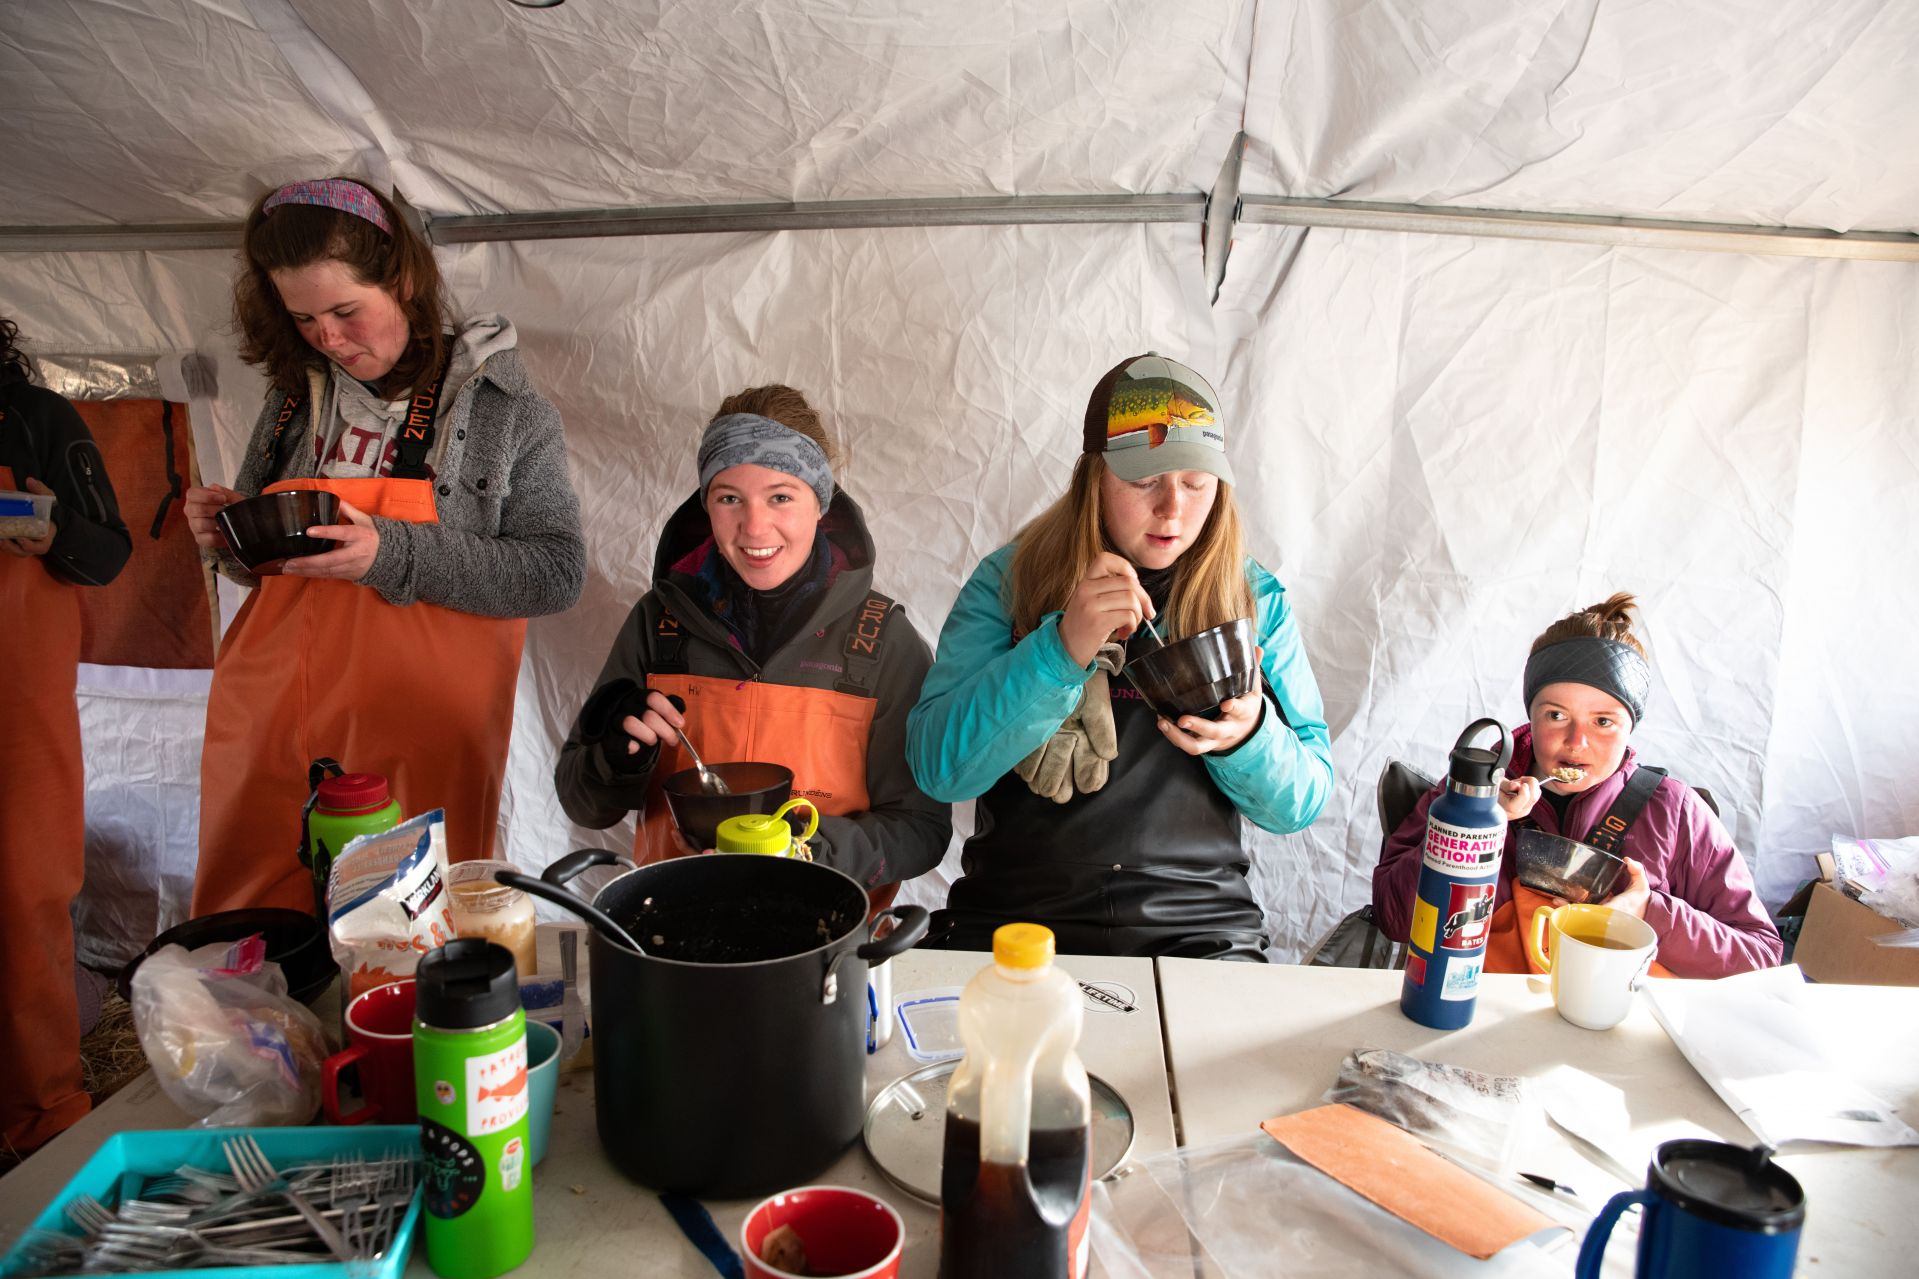 Having breakfast inside the camp WeatherPort are, from left, Anna Truman-Wyss '21, Hanna Webster '22, Emma Christman '22, and Solaine Carter '21. (Tim Leach '99 for Bates College)